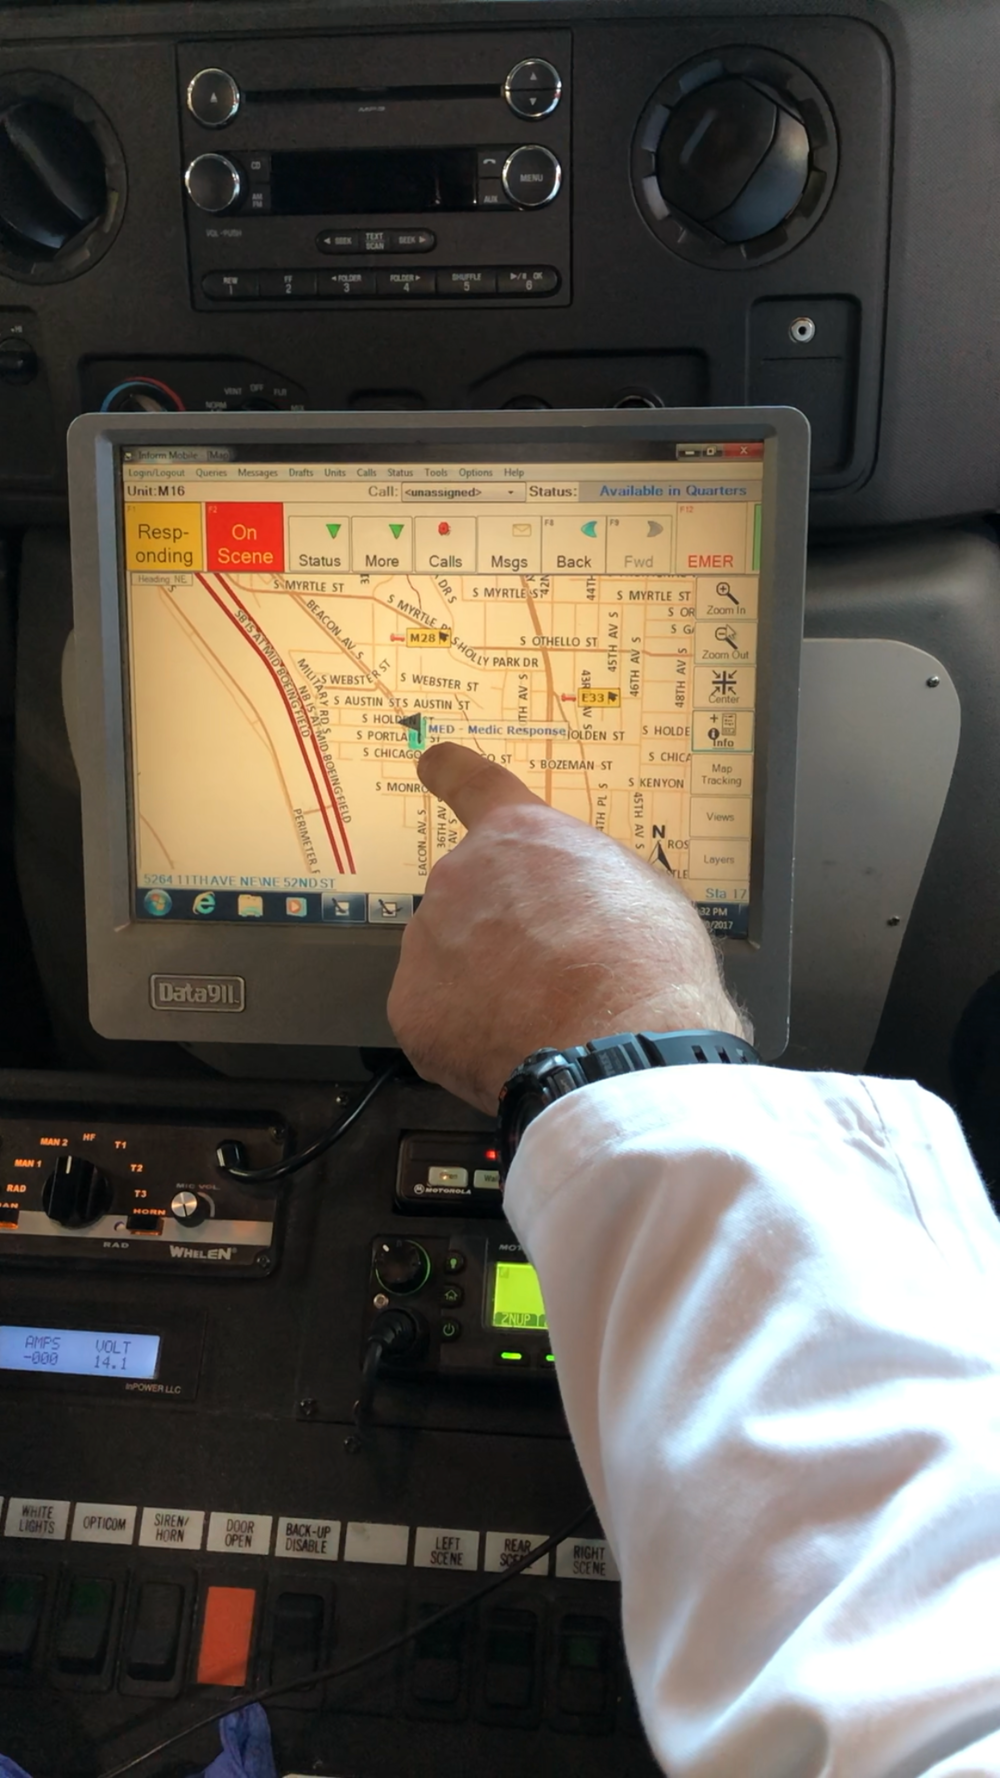 A paramedic showing us the embedded navigation system. - This is a navigation system embedded in both fire engines and ambulances. It allows first responders to view routes, check dispatched calls, see locations of other units, and toggle between working status.